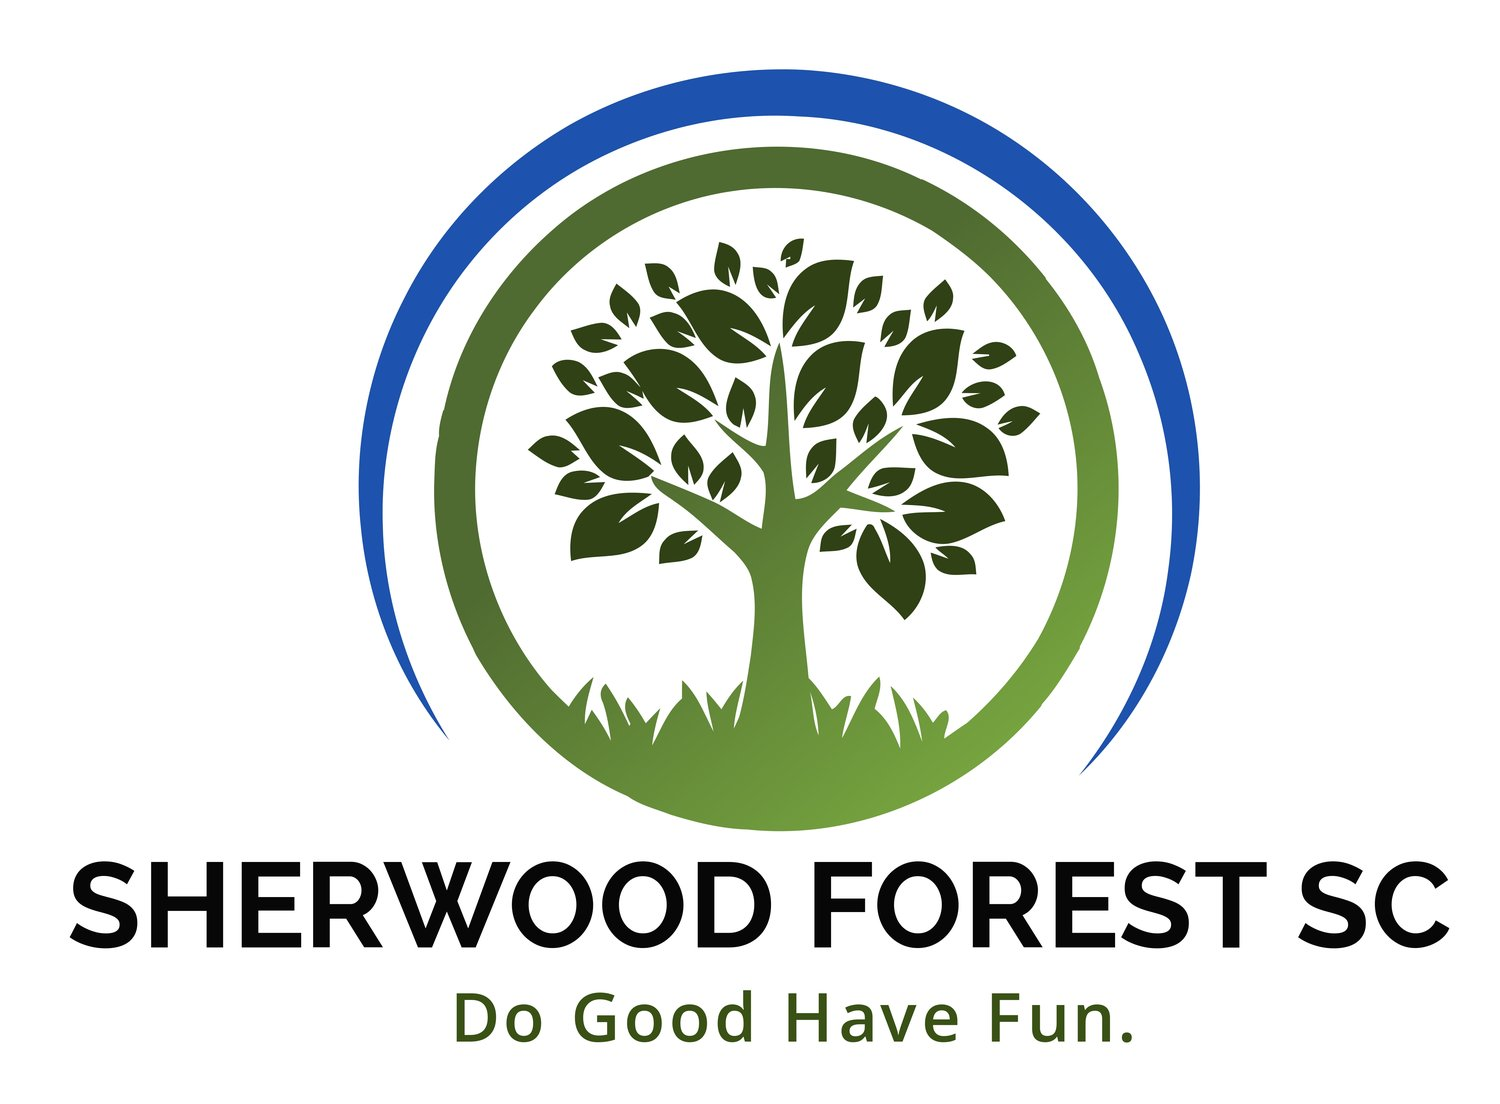 Sherwood Forest SC